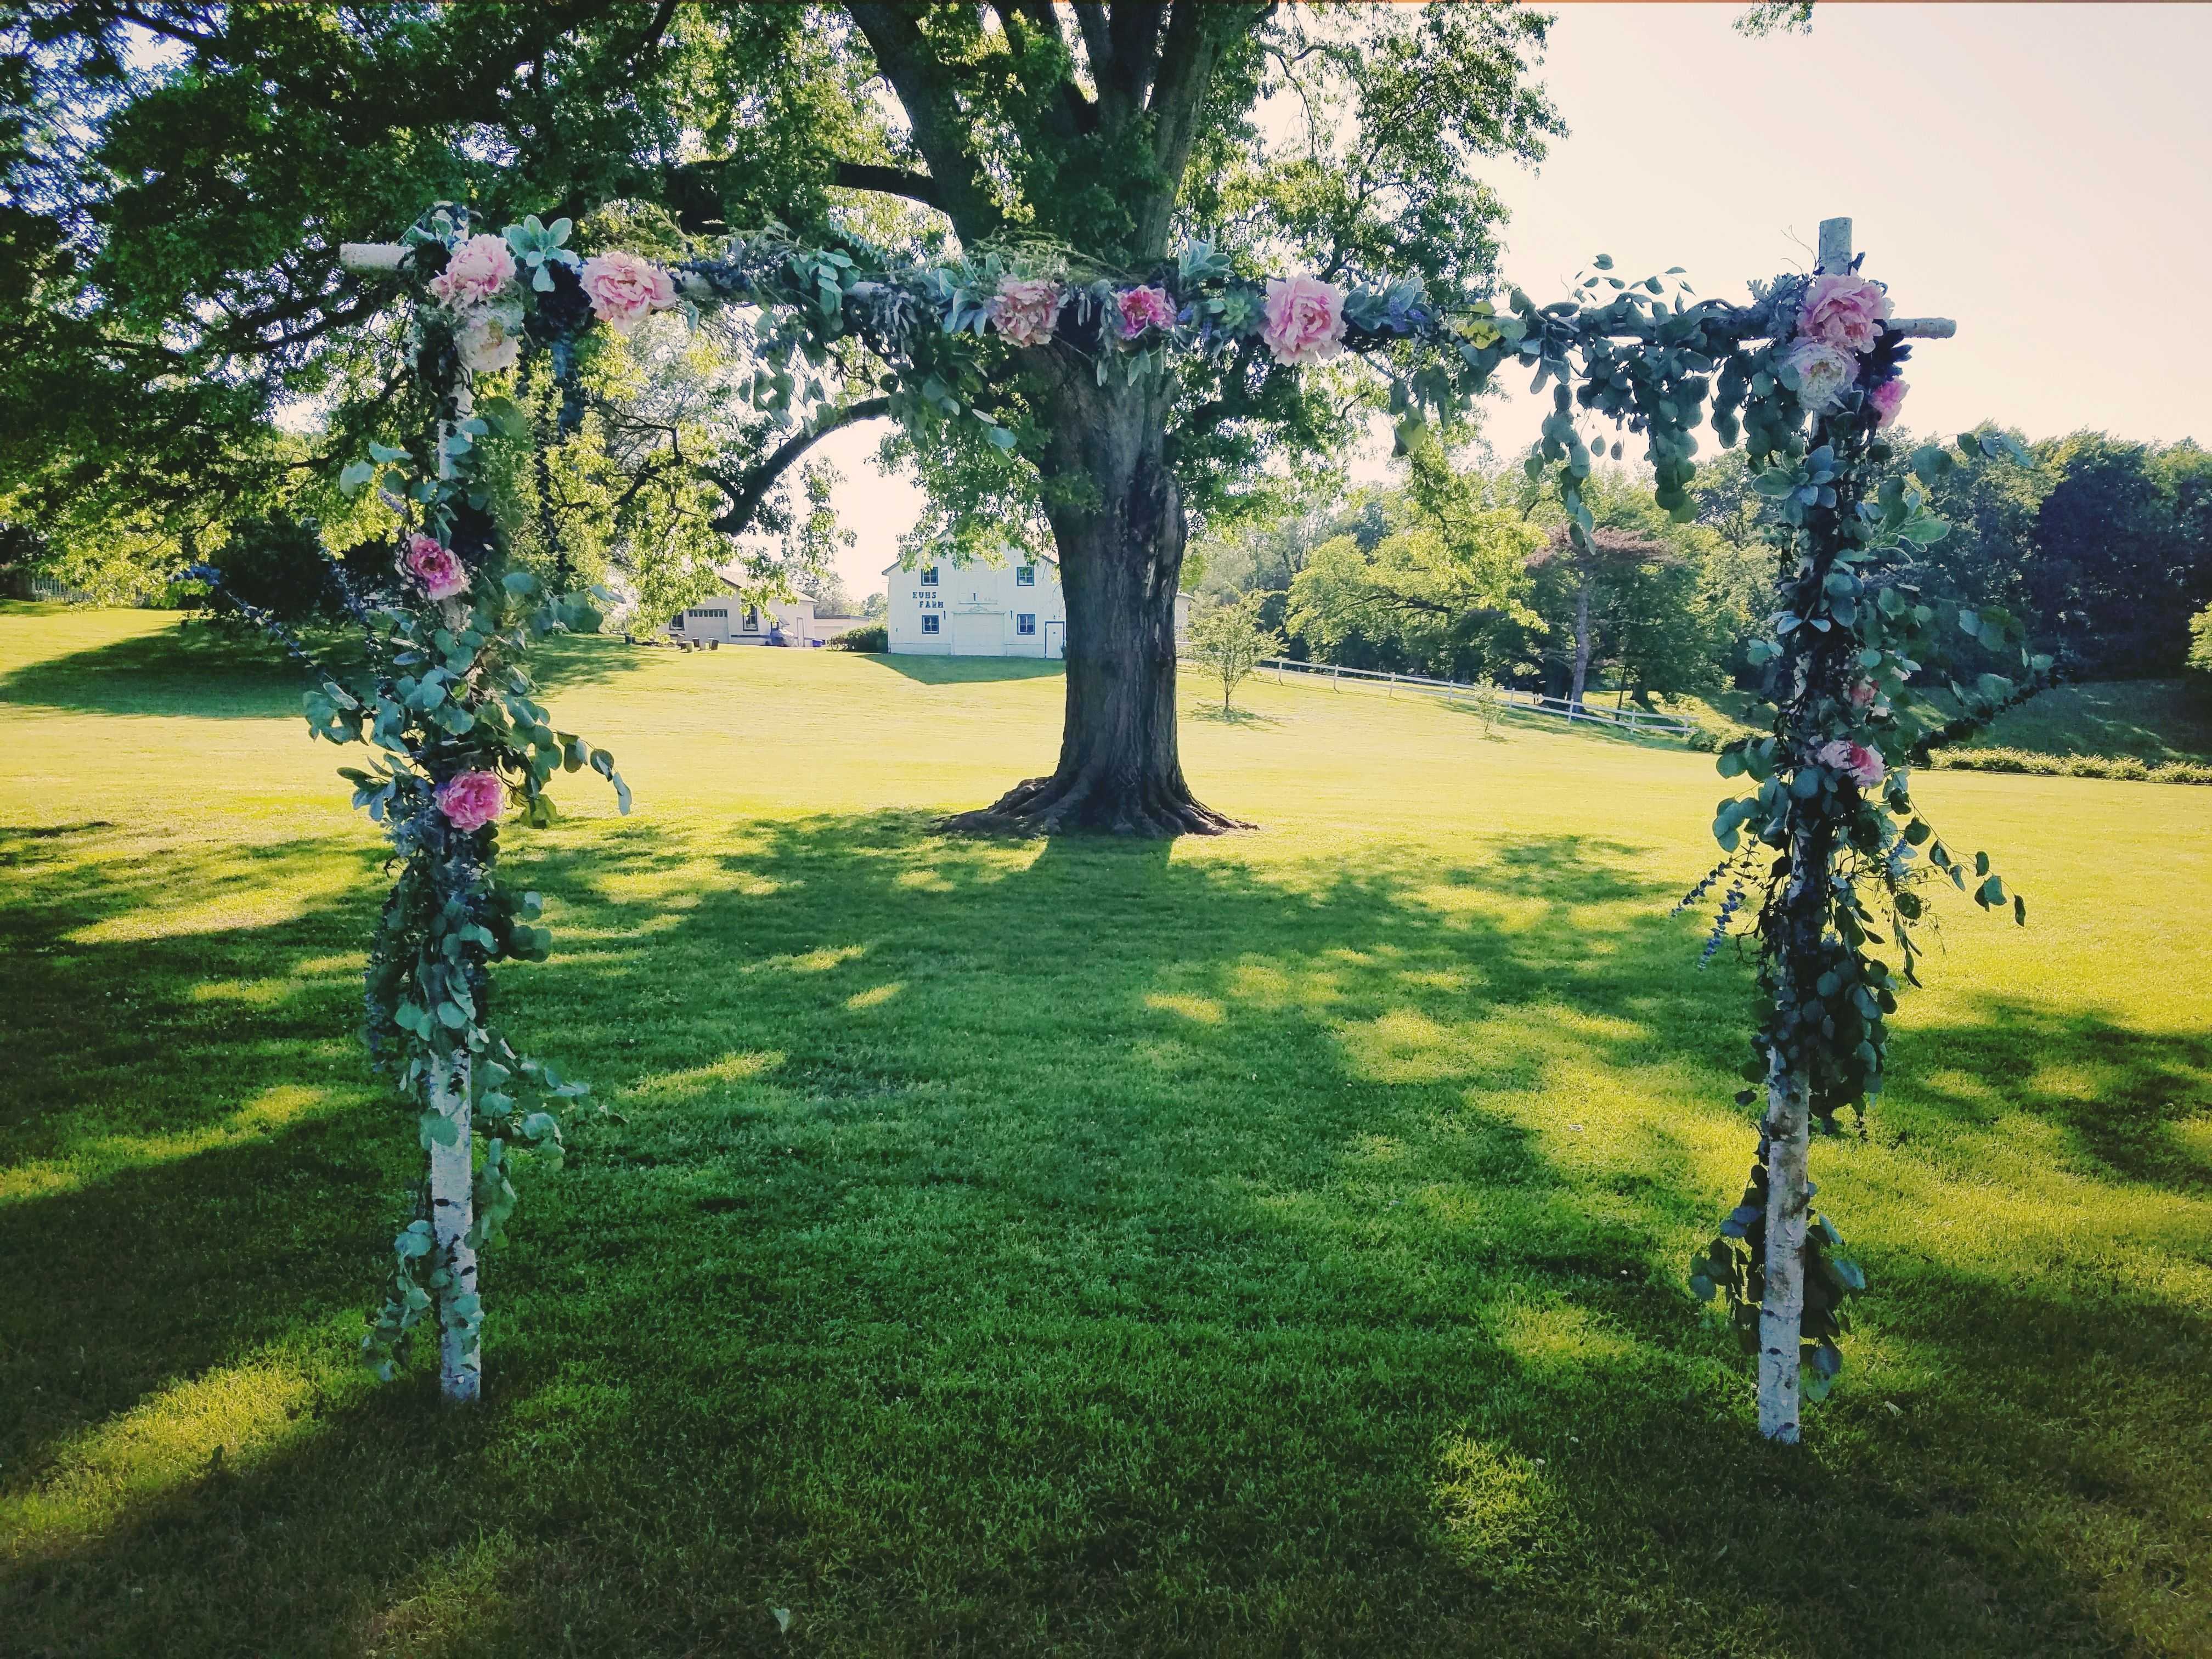 Private Event E Weddings And Receptions Kuhs Estate Farm St